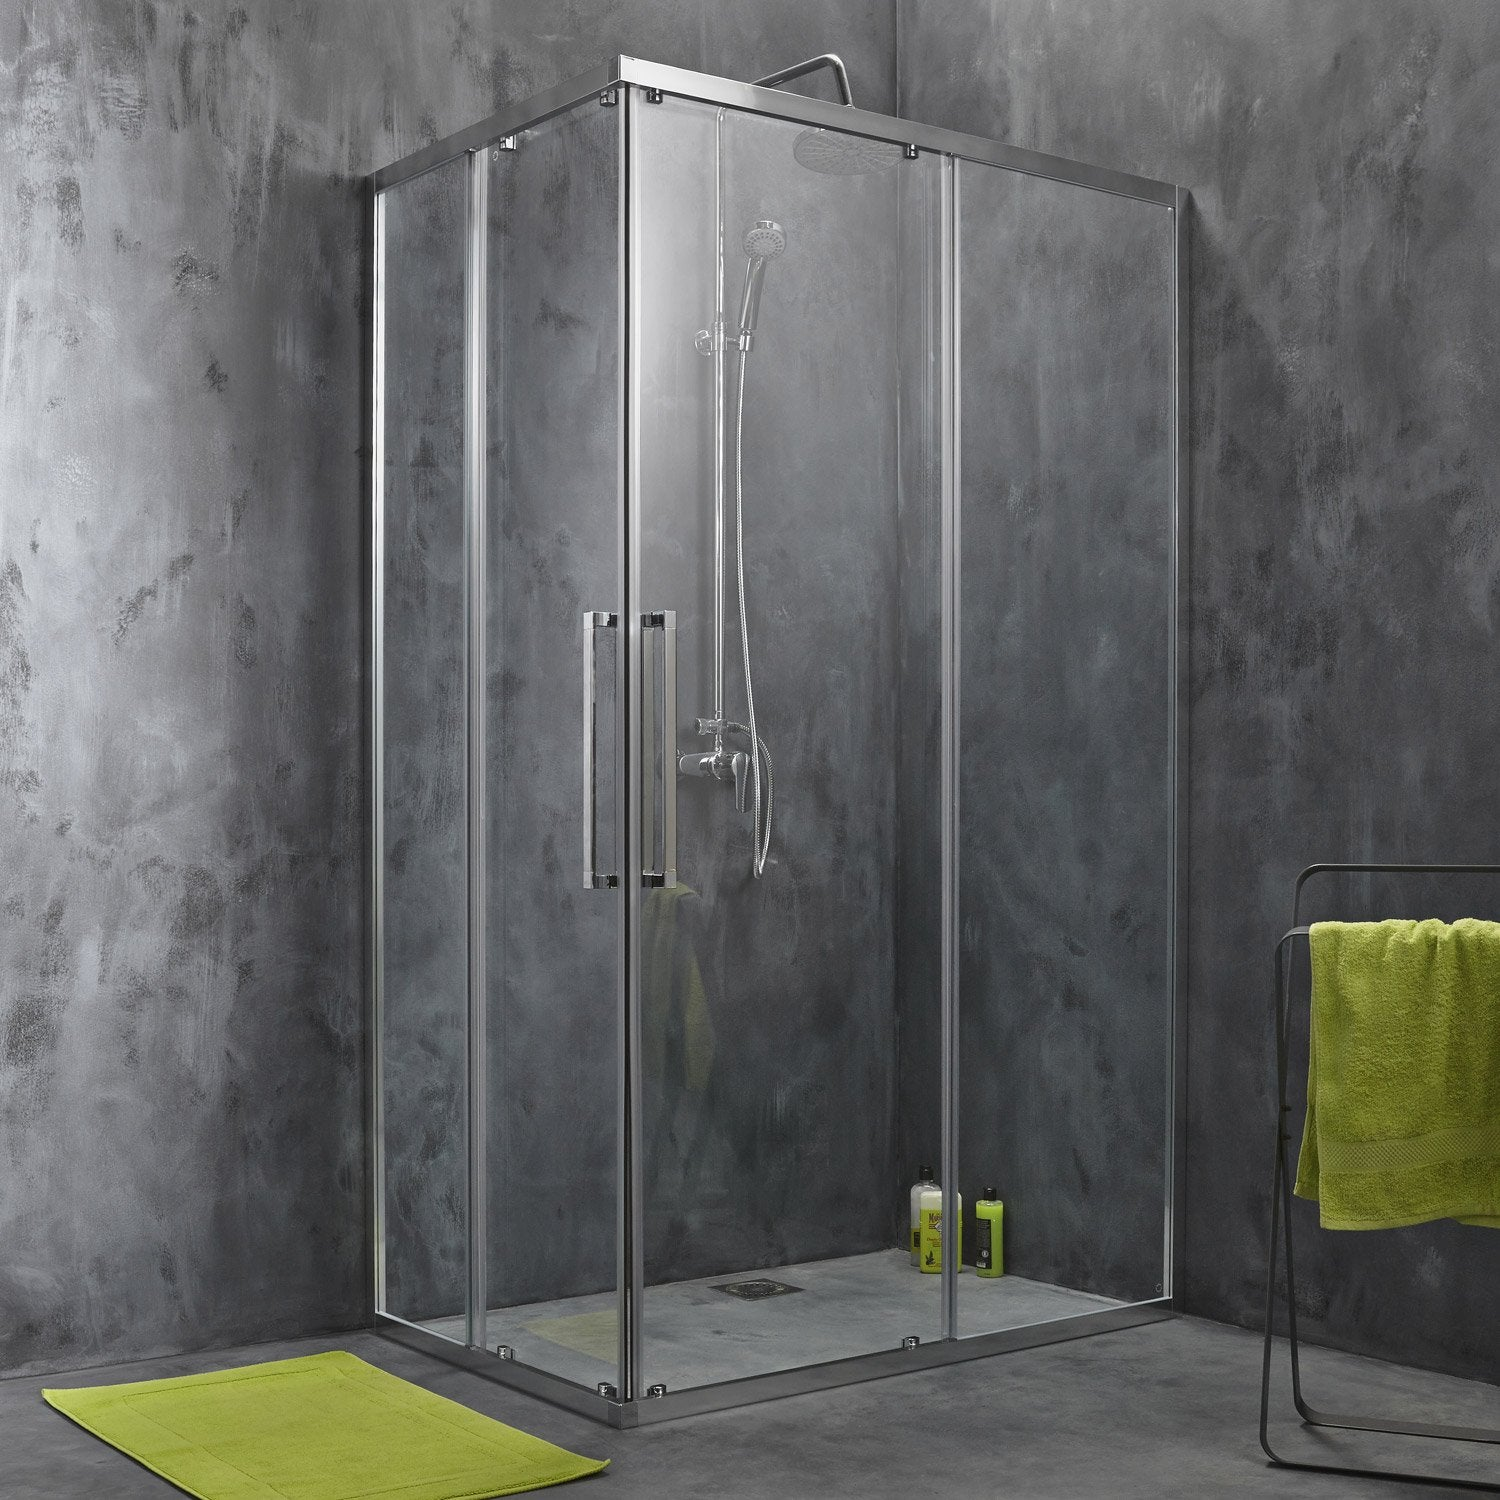 Porte de douche coulissante angle rectangle 120 x 80 cm transparent purit - Paroi de douche coulissante 120 ...